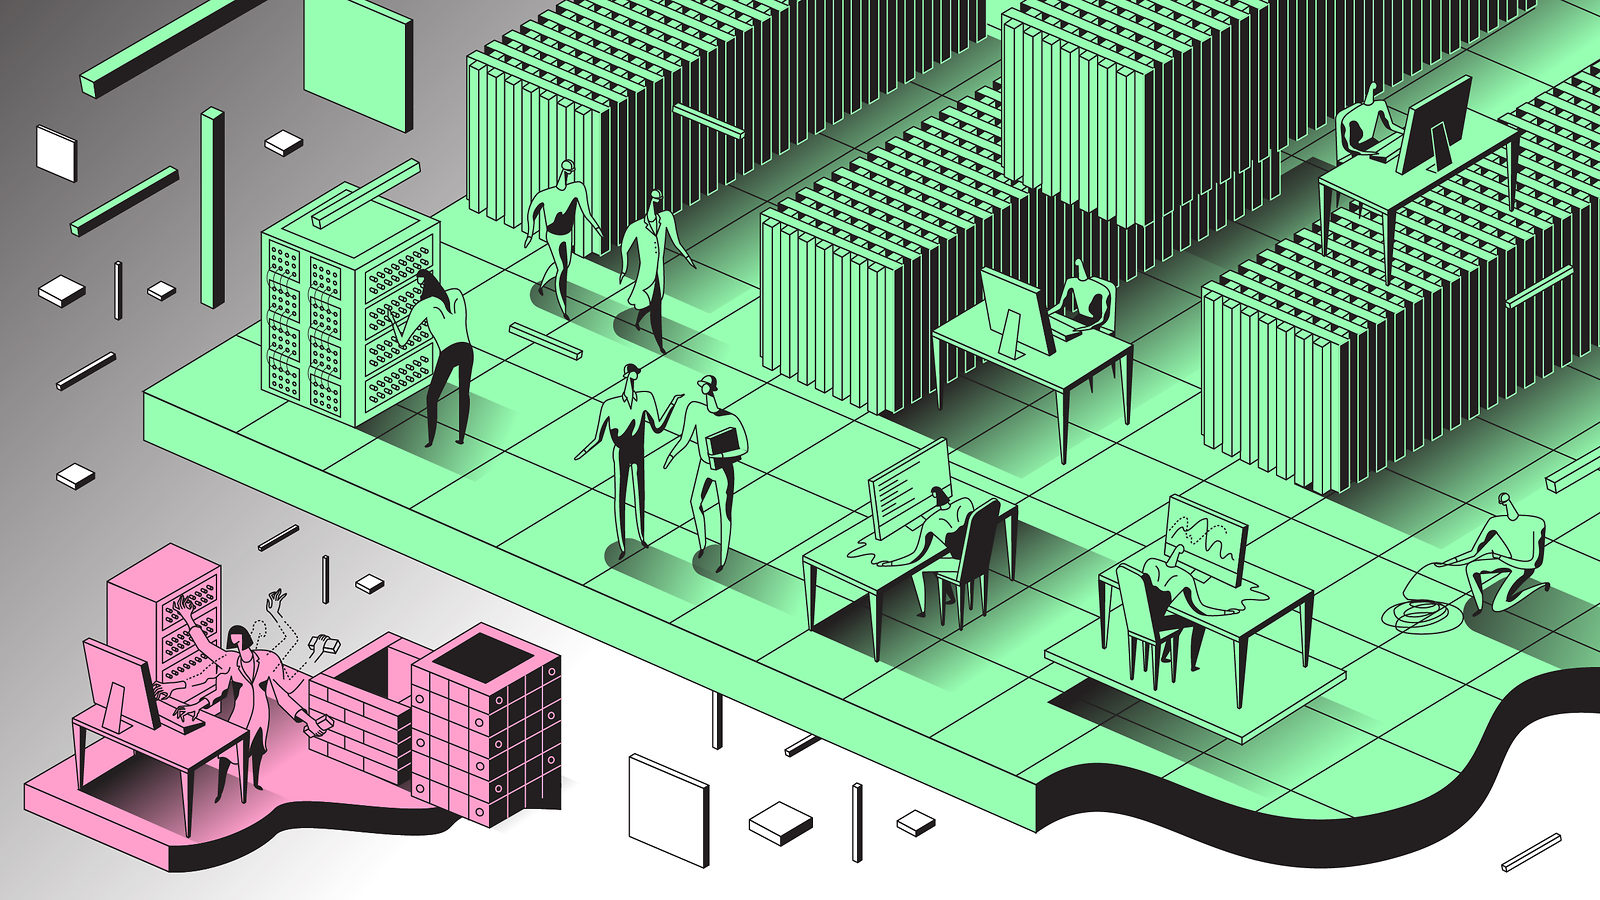 Illustration of people in larger green offices vs one person in smaller pink office